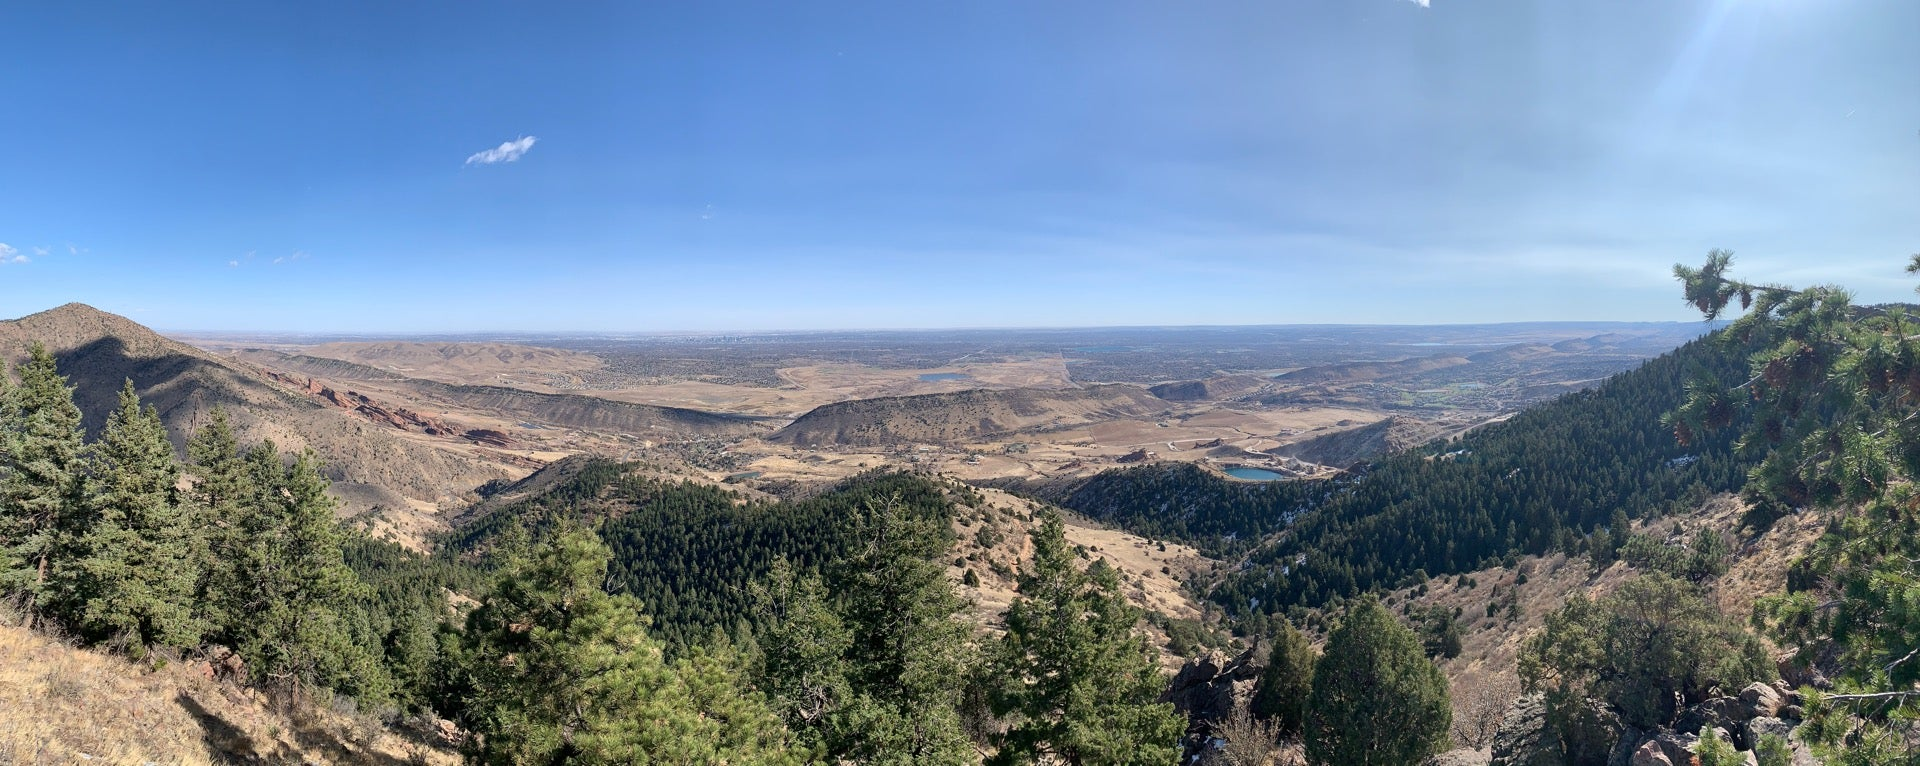 Checked in at Mt. Falcon Vantage Point